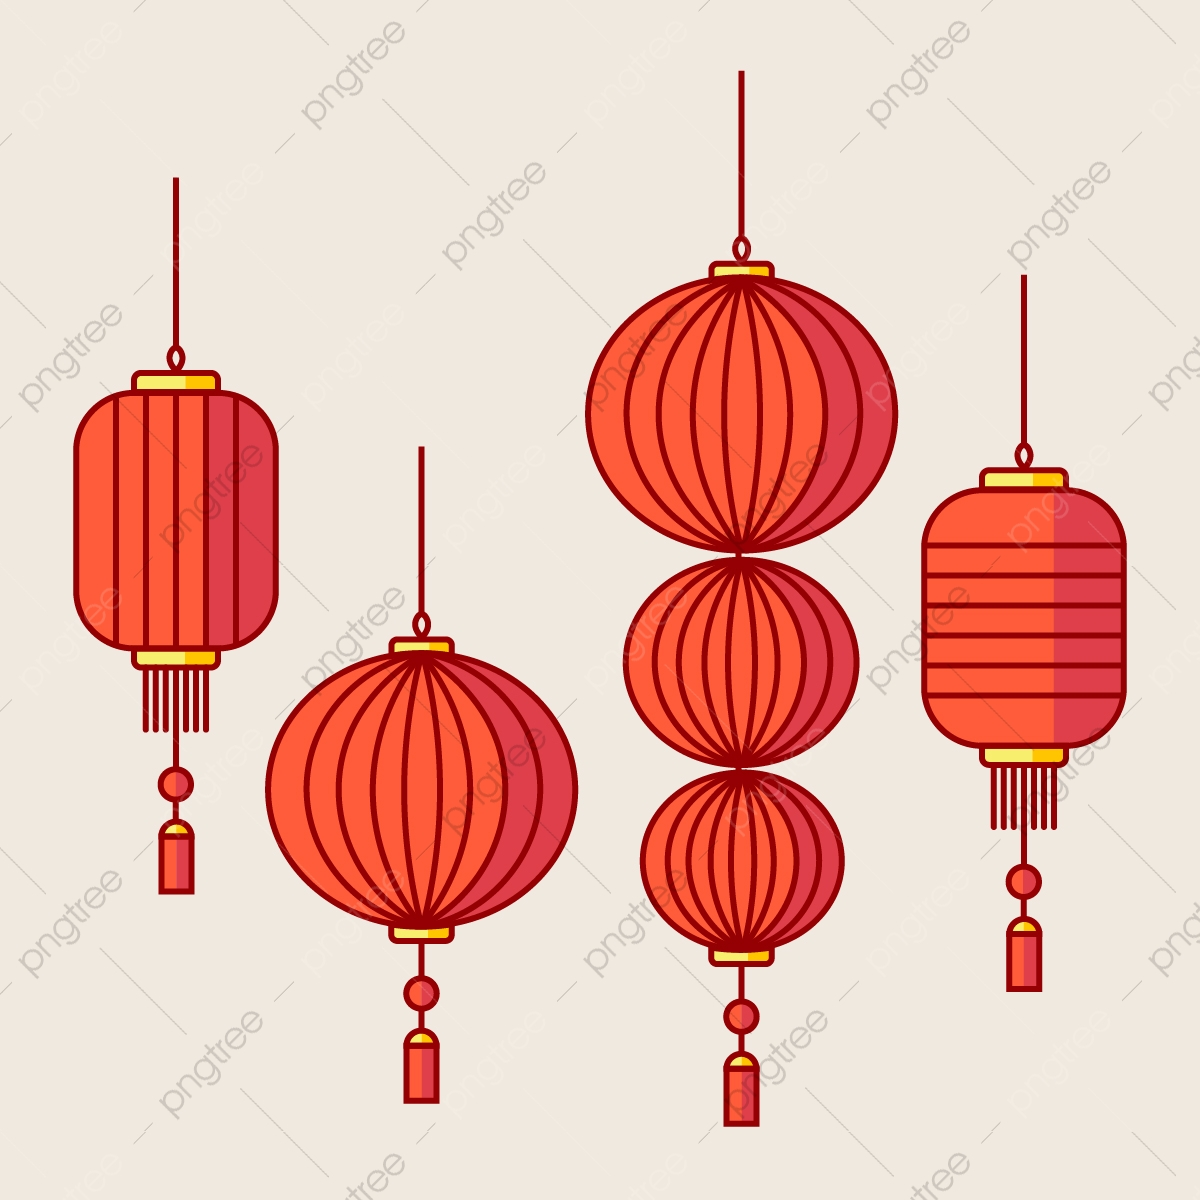 Chinese Lantern Png Vector Psd And Clipart With Transparent Background For Free Download Pngtree